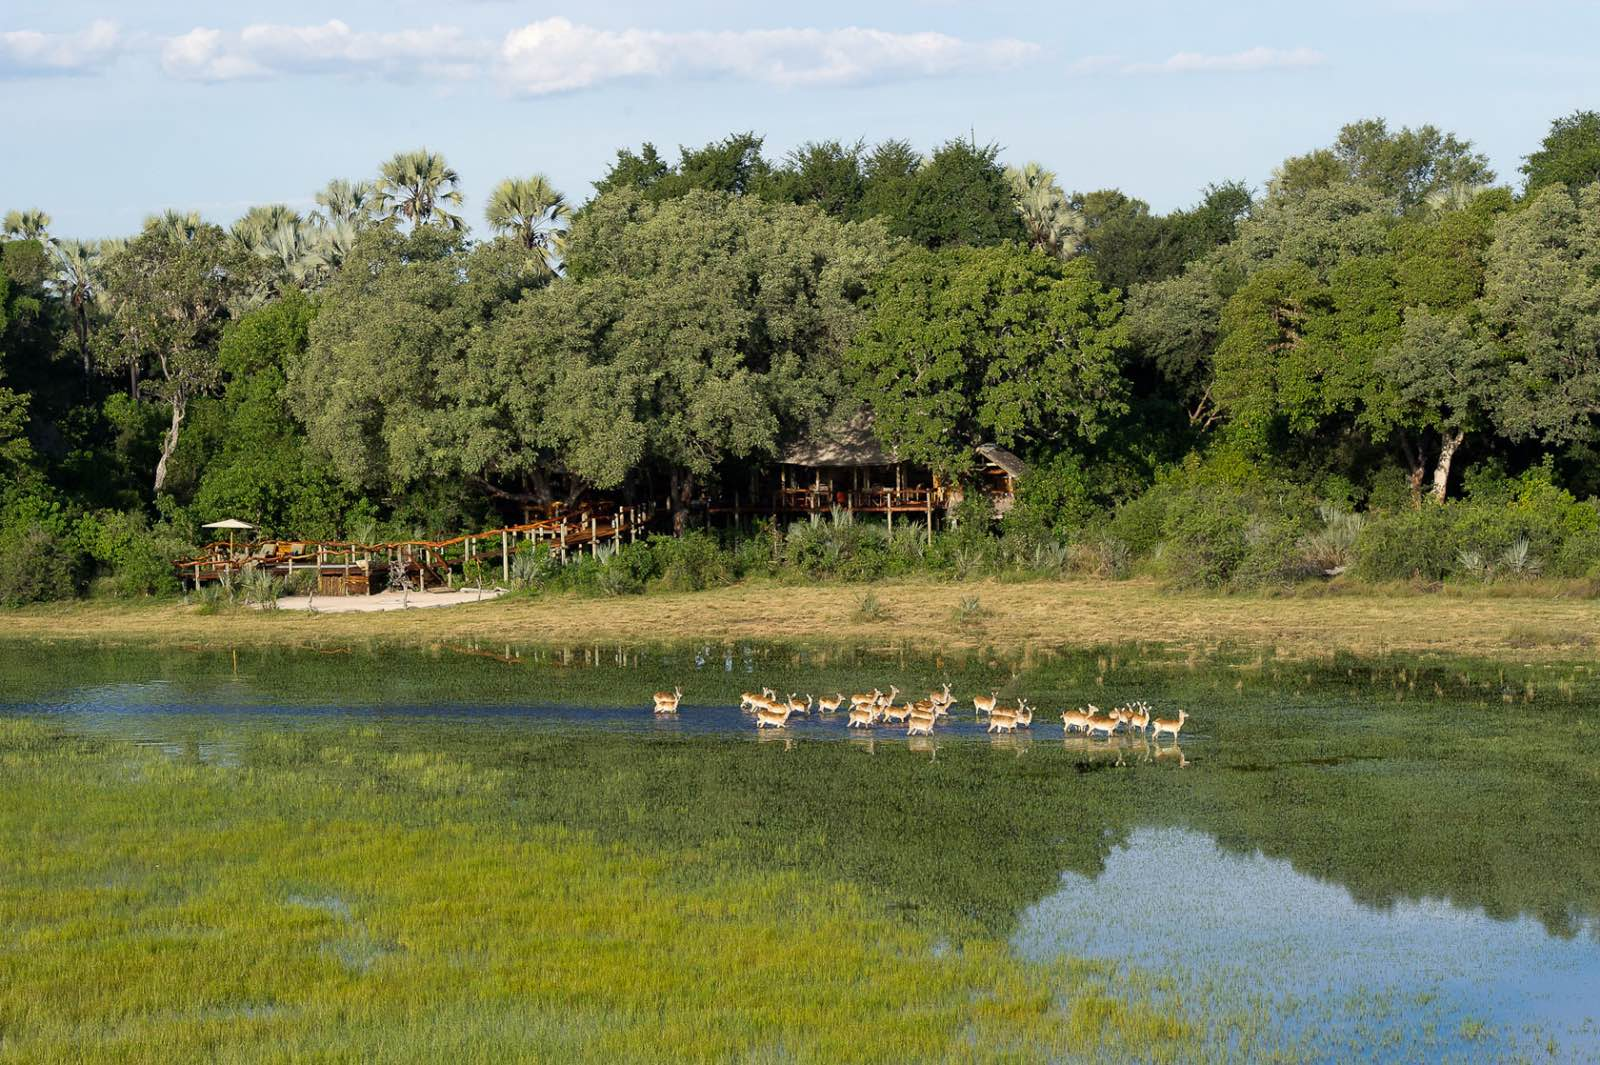 Idyllic location in the trees of Hundu Island in the Delta at Tubu Tree Camp with lechwe in the foreground